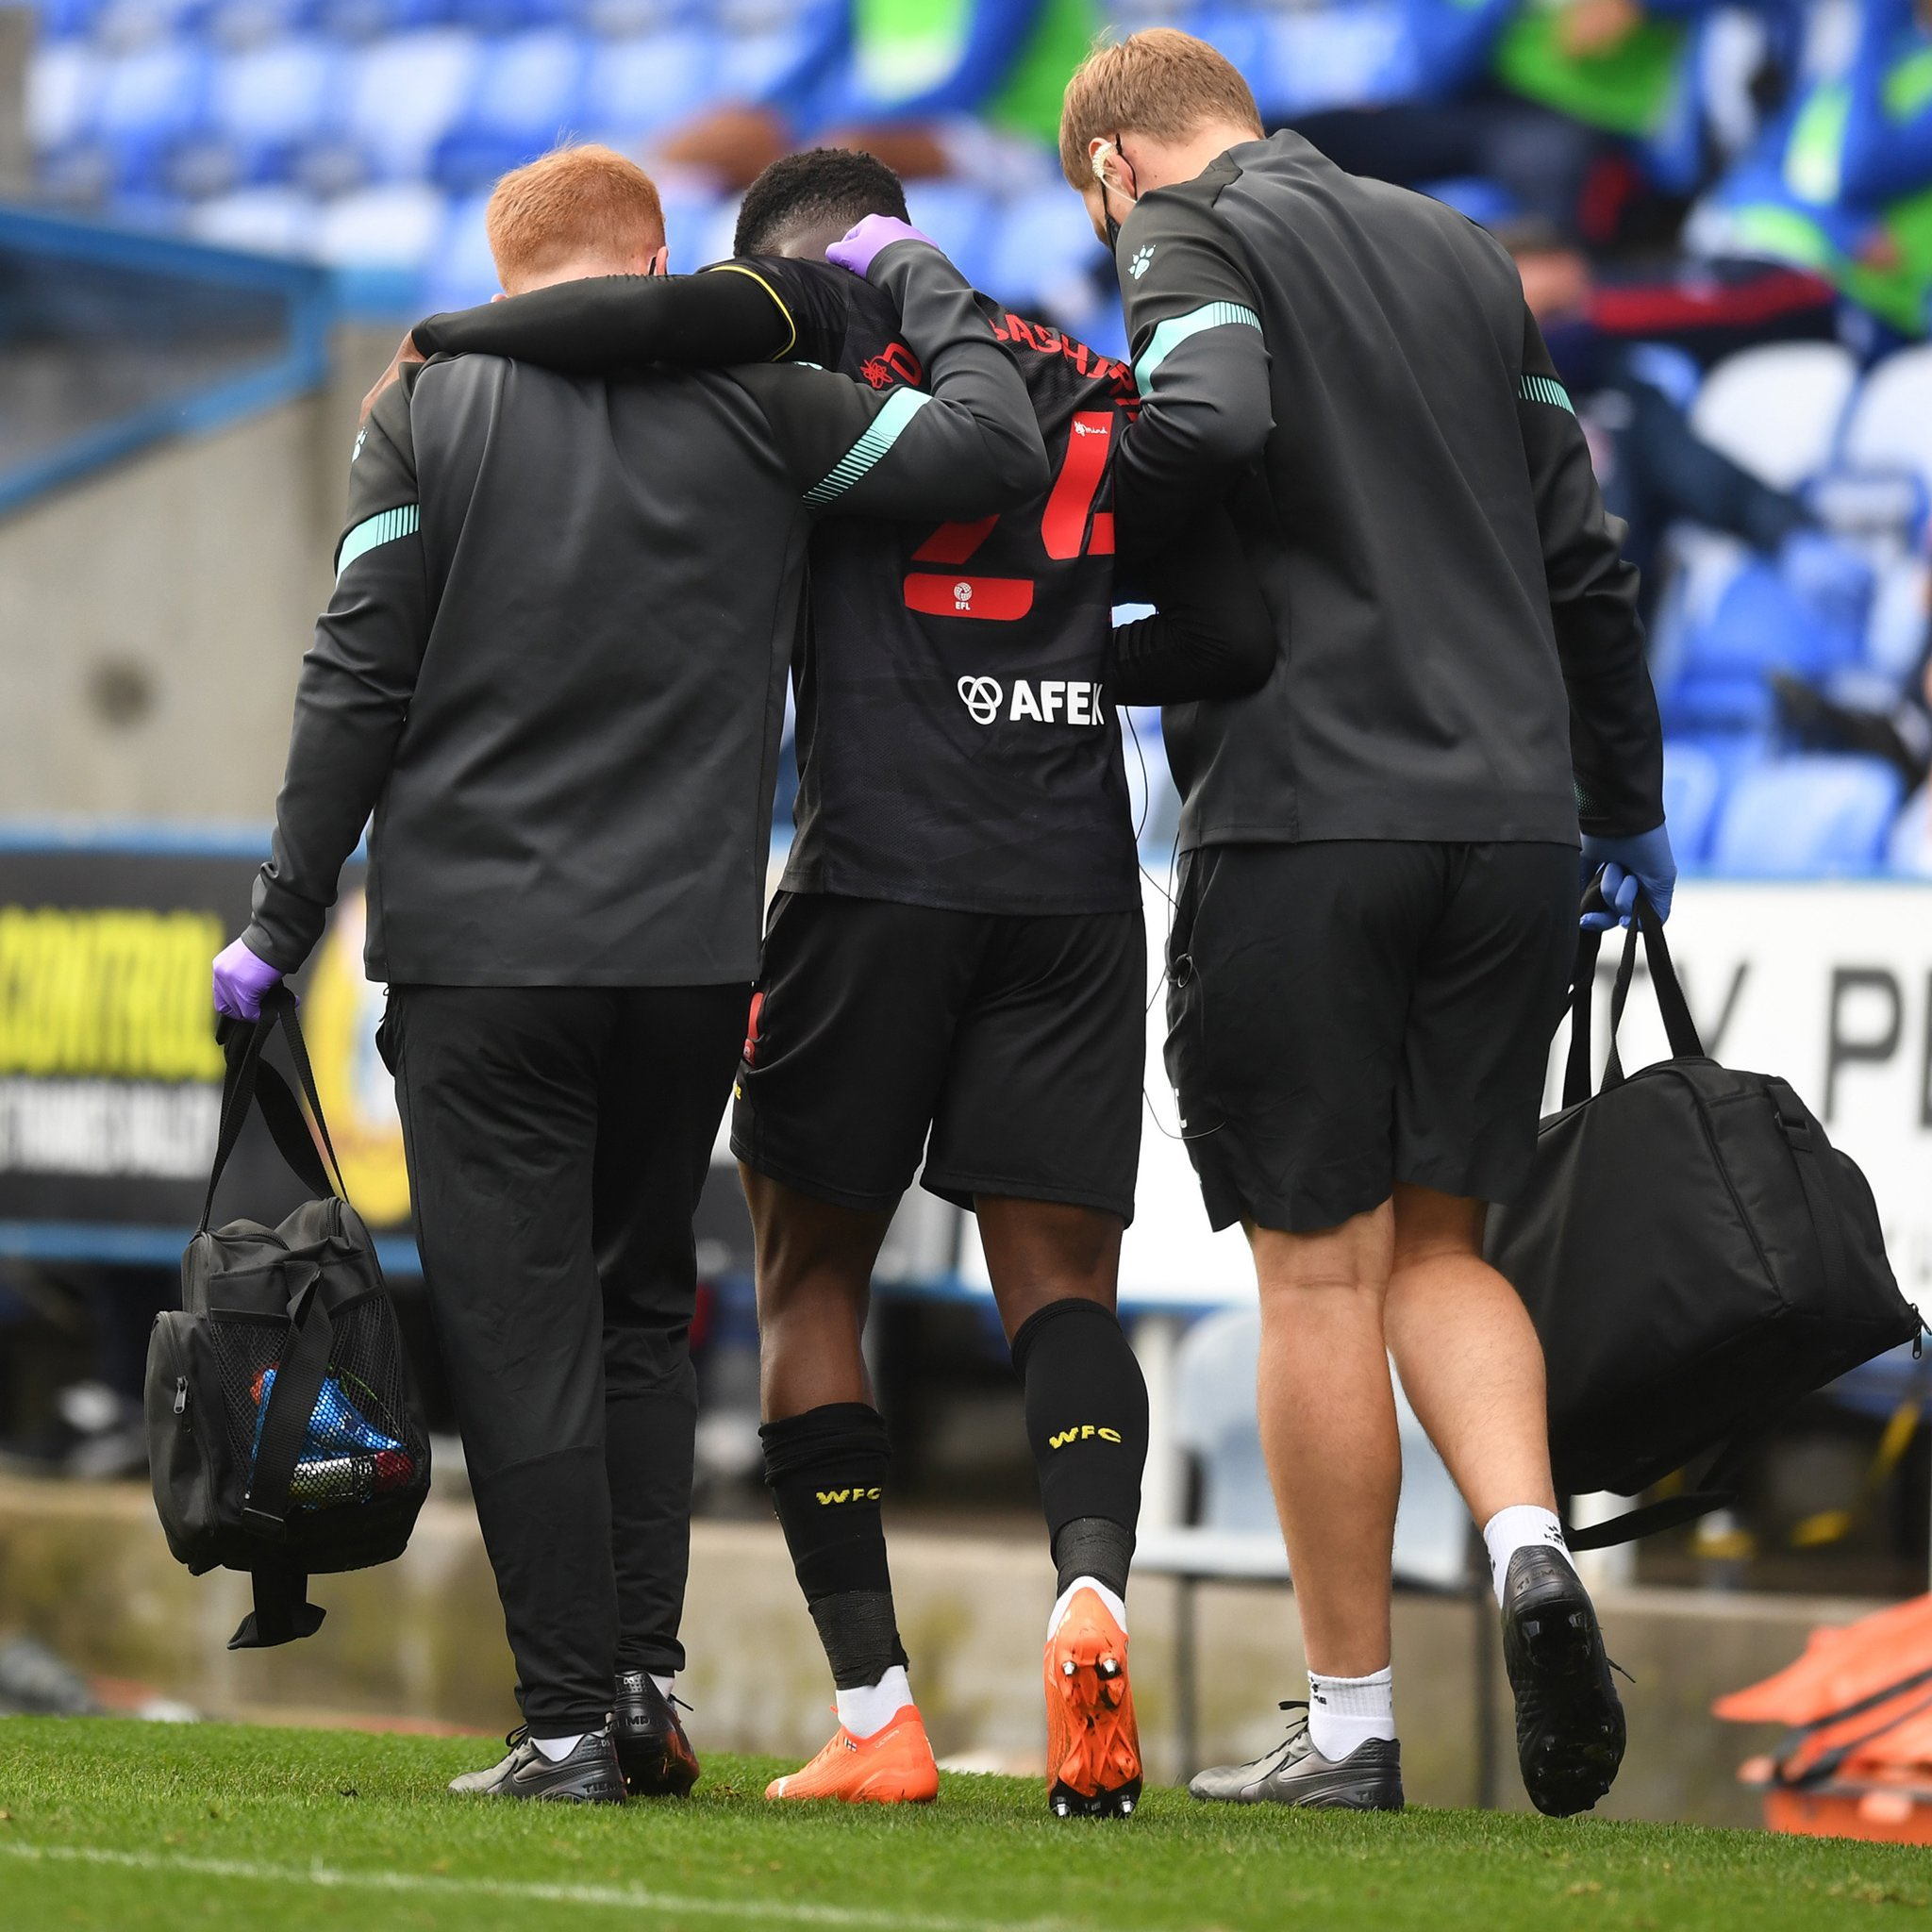 Dele-Bashiru Out For Six Months With Knee Injury